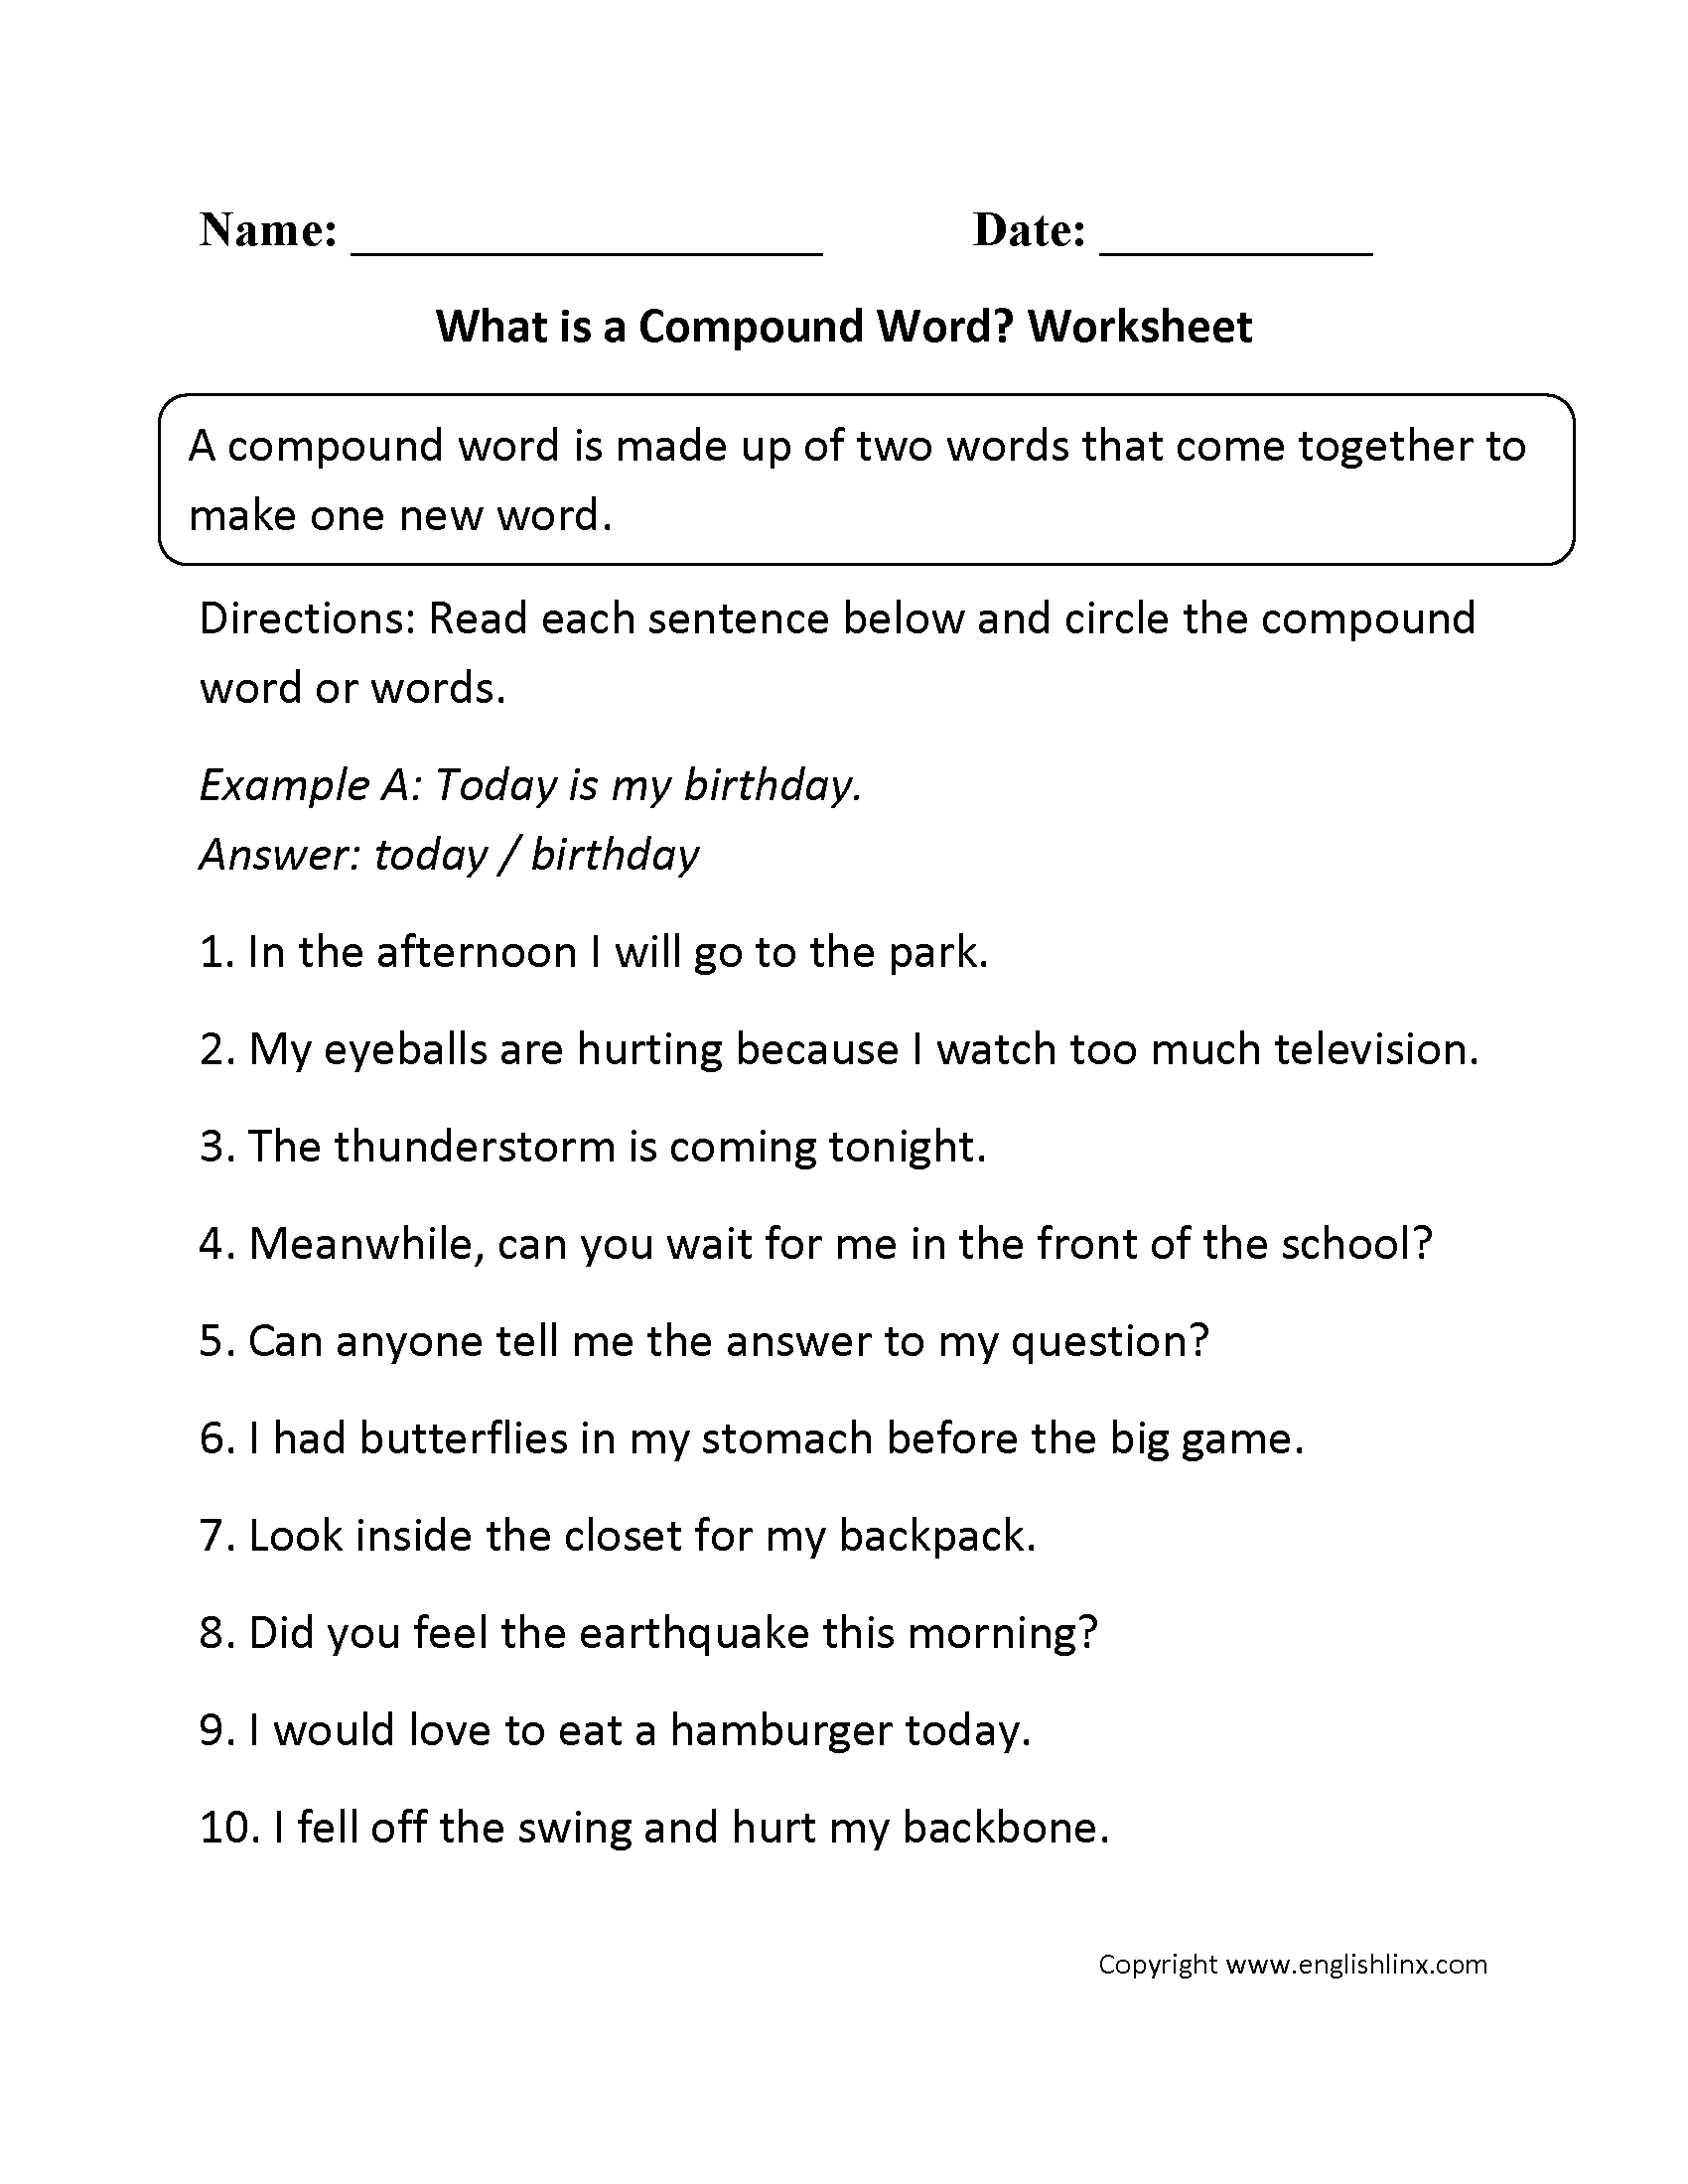 Worksheets Grammar Mechanics Worksheets grammar mechanics worksheets compound words worksheets